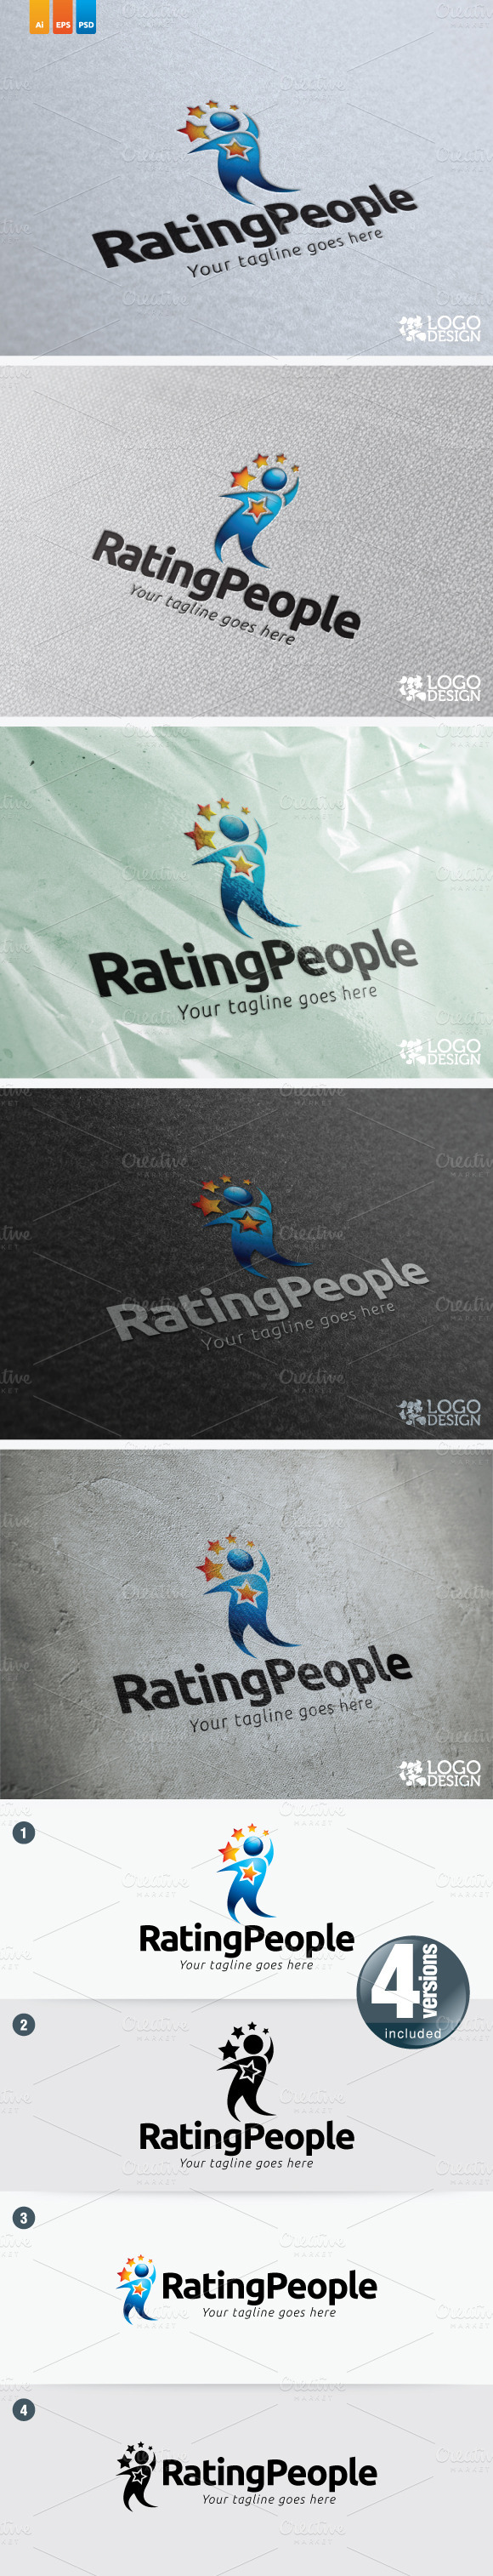 Rating People